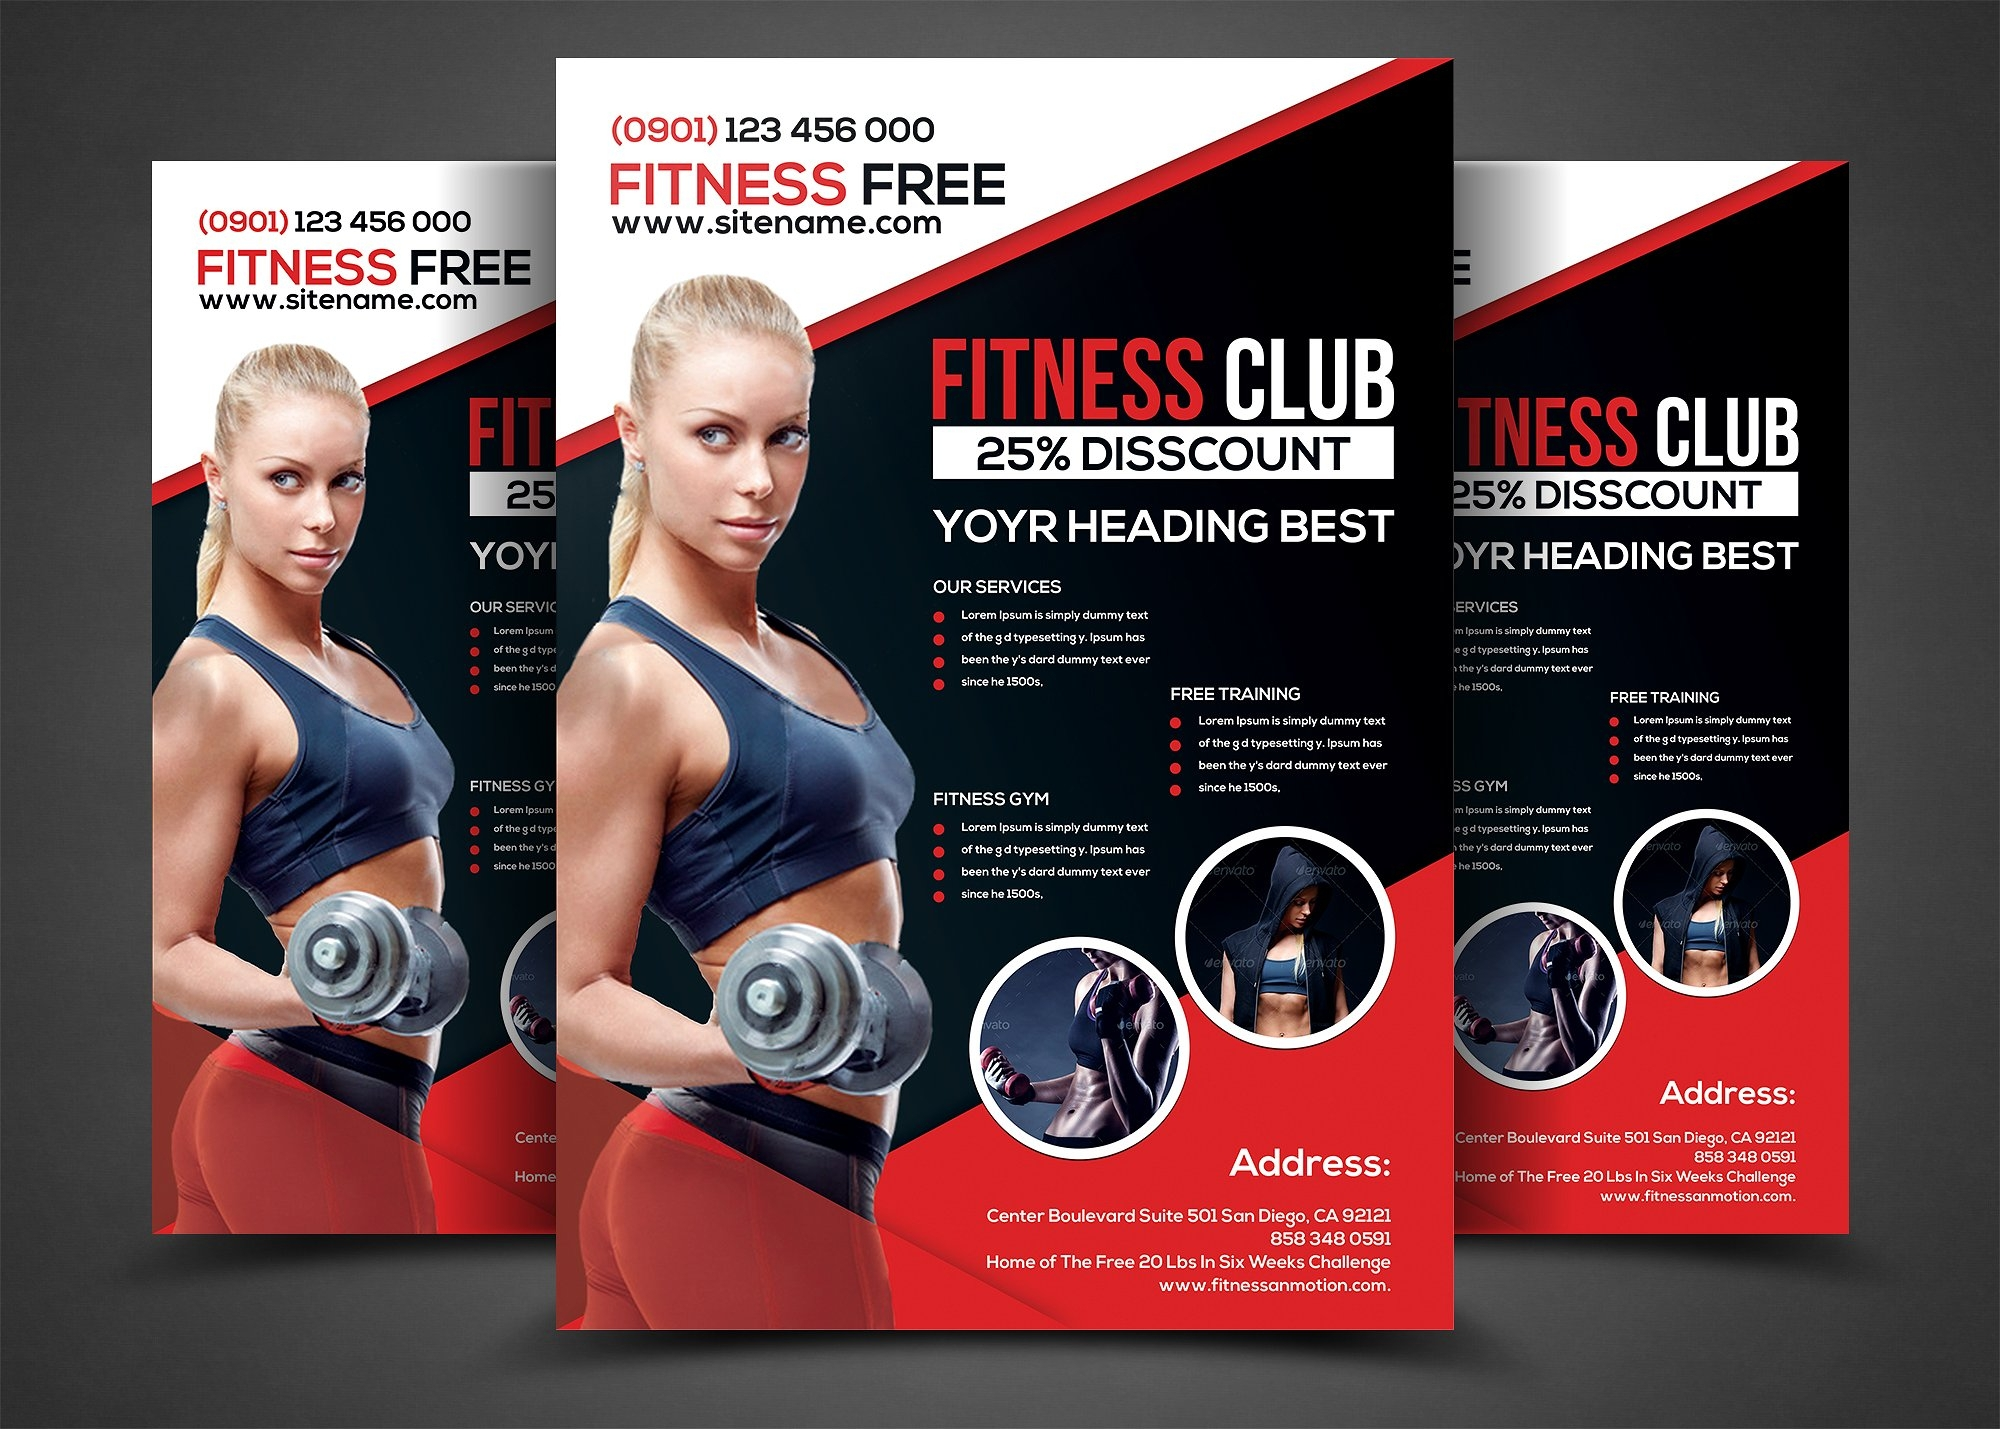 14 gym flyer designs examples psd ai. Black Bedroom Furniture Sets. Home Design Ideas